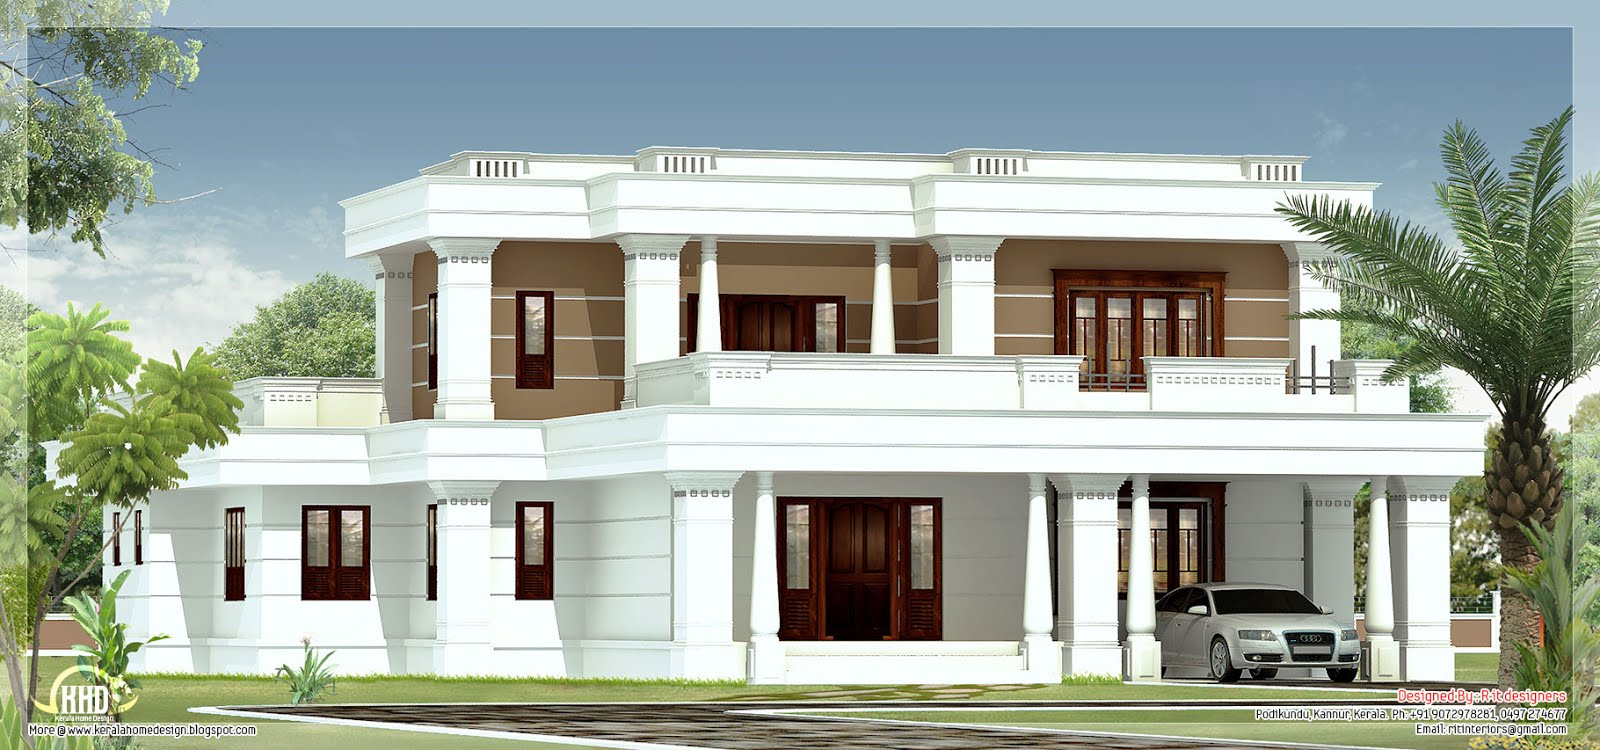 4 bedroom flat roof villa kerala home design and floor plans for Four bedroom kerala house plans